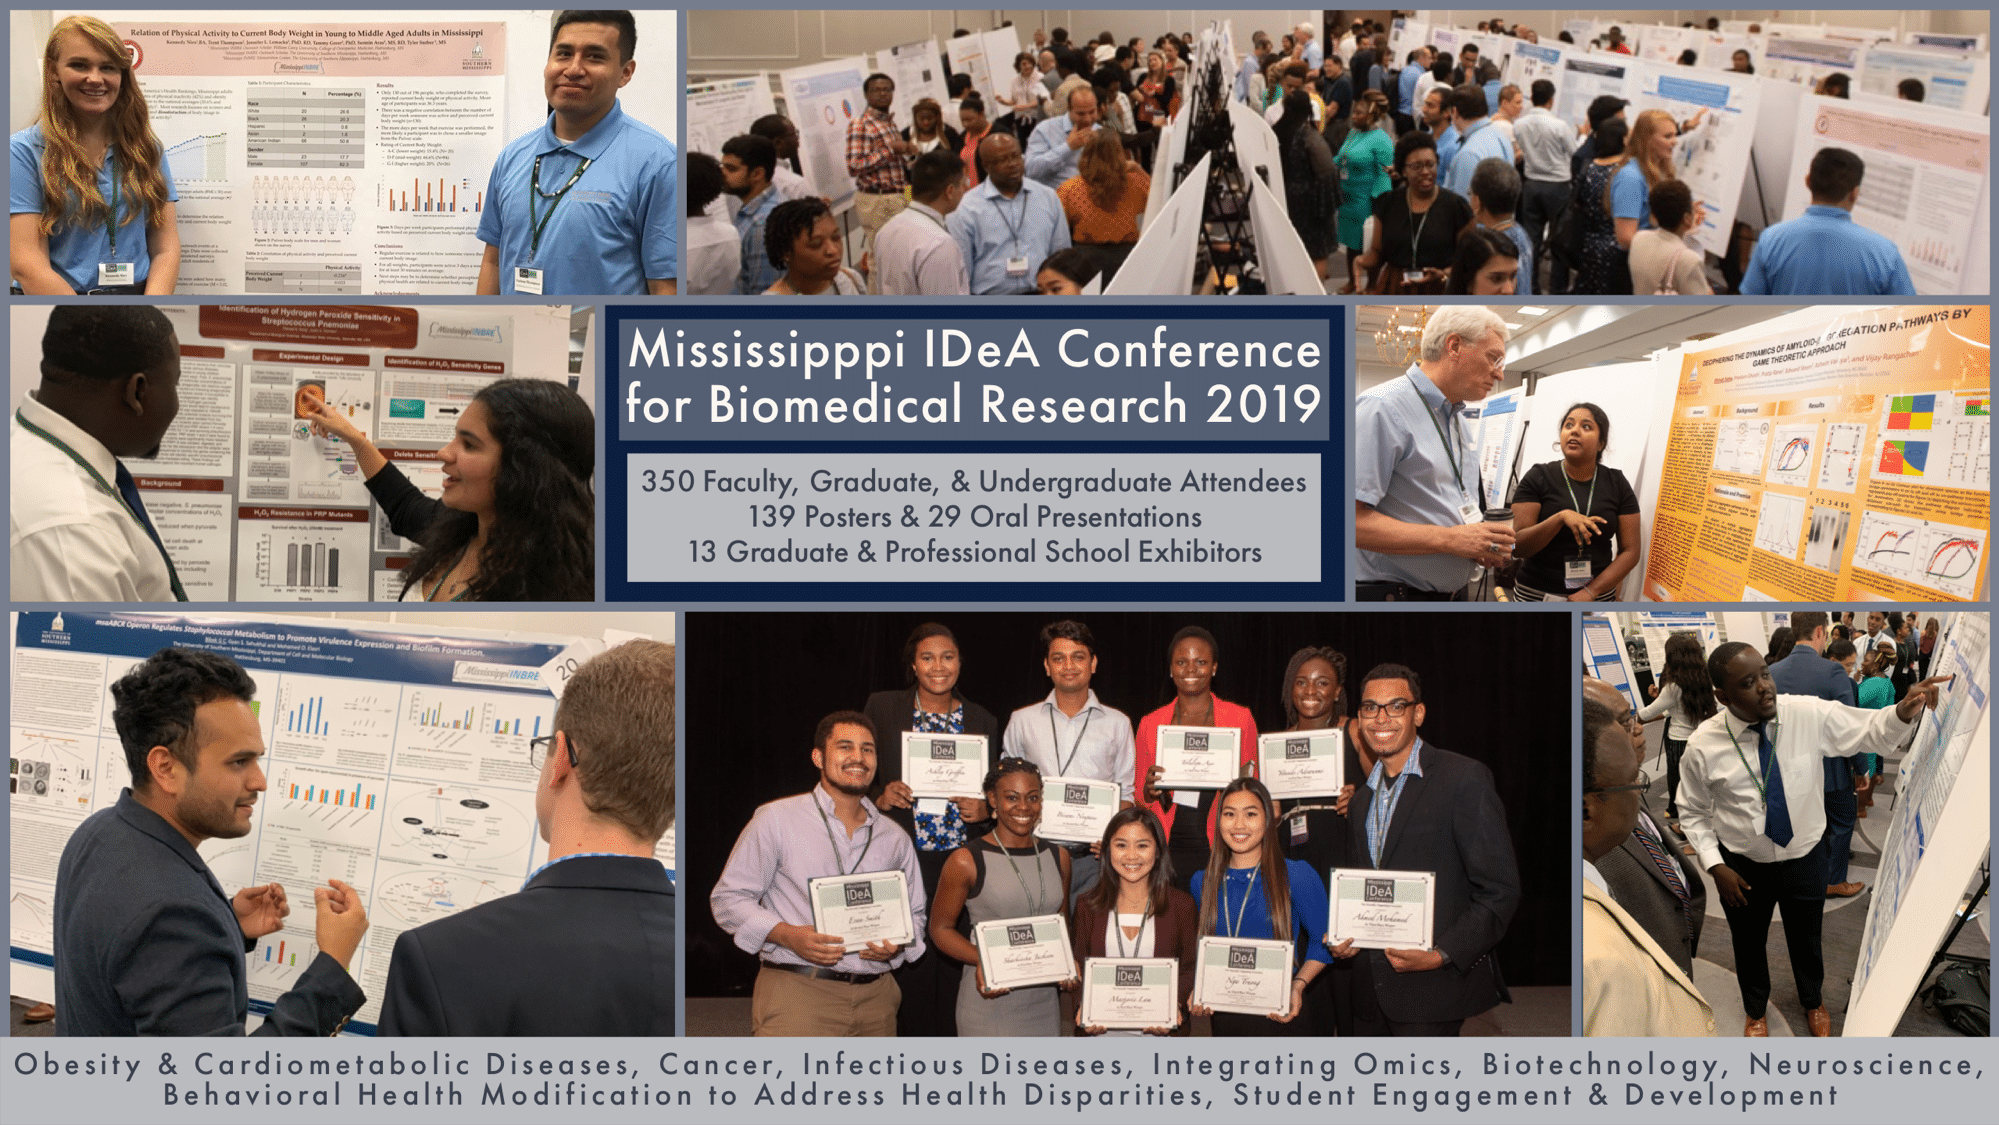 Impact of the Second Annual Mississippi IDeA Conference for Biomedical Research